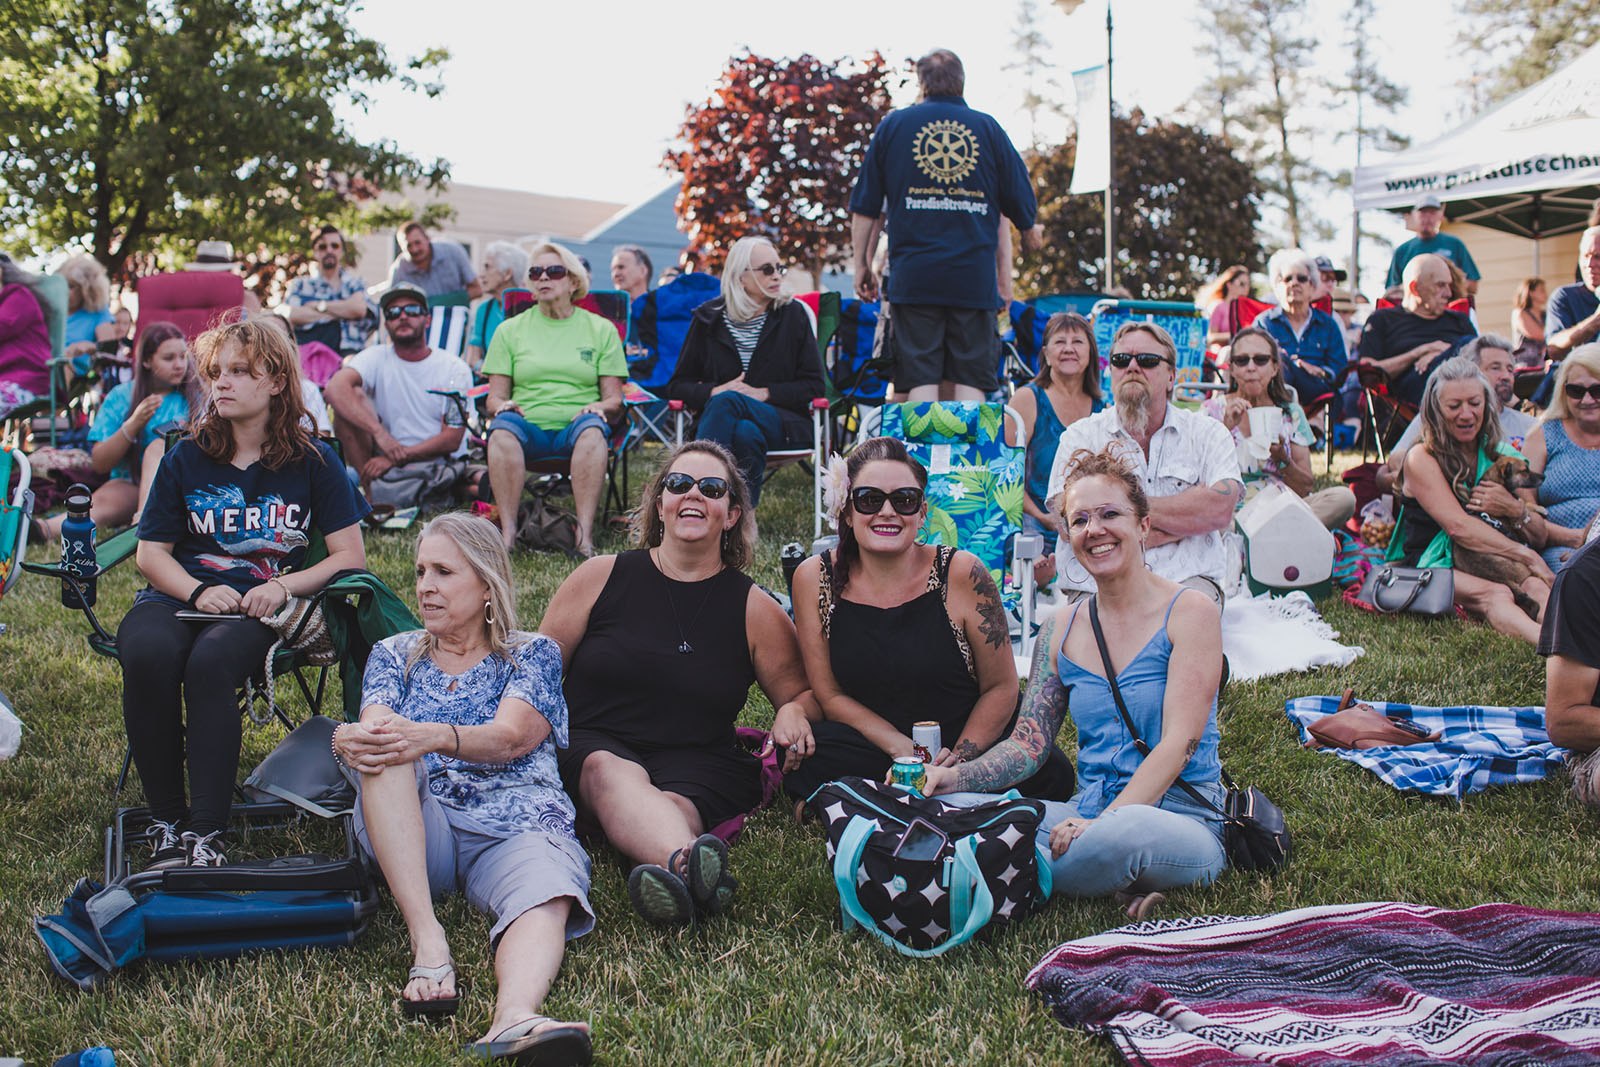 Party in the Park Music & Marketplace Wednesdays, June 12 - July 31st -